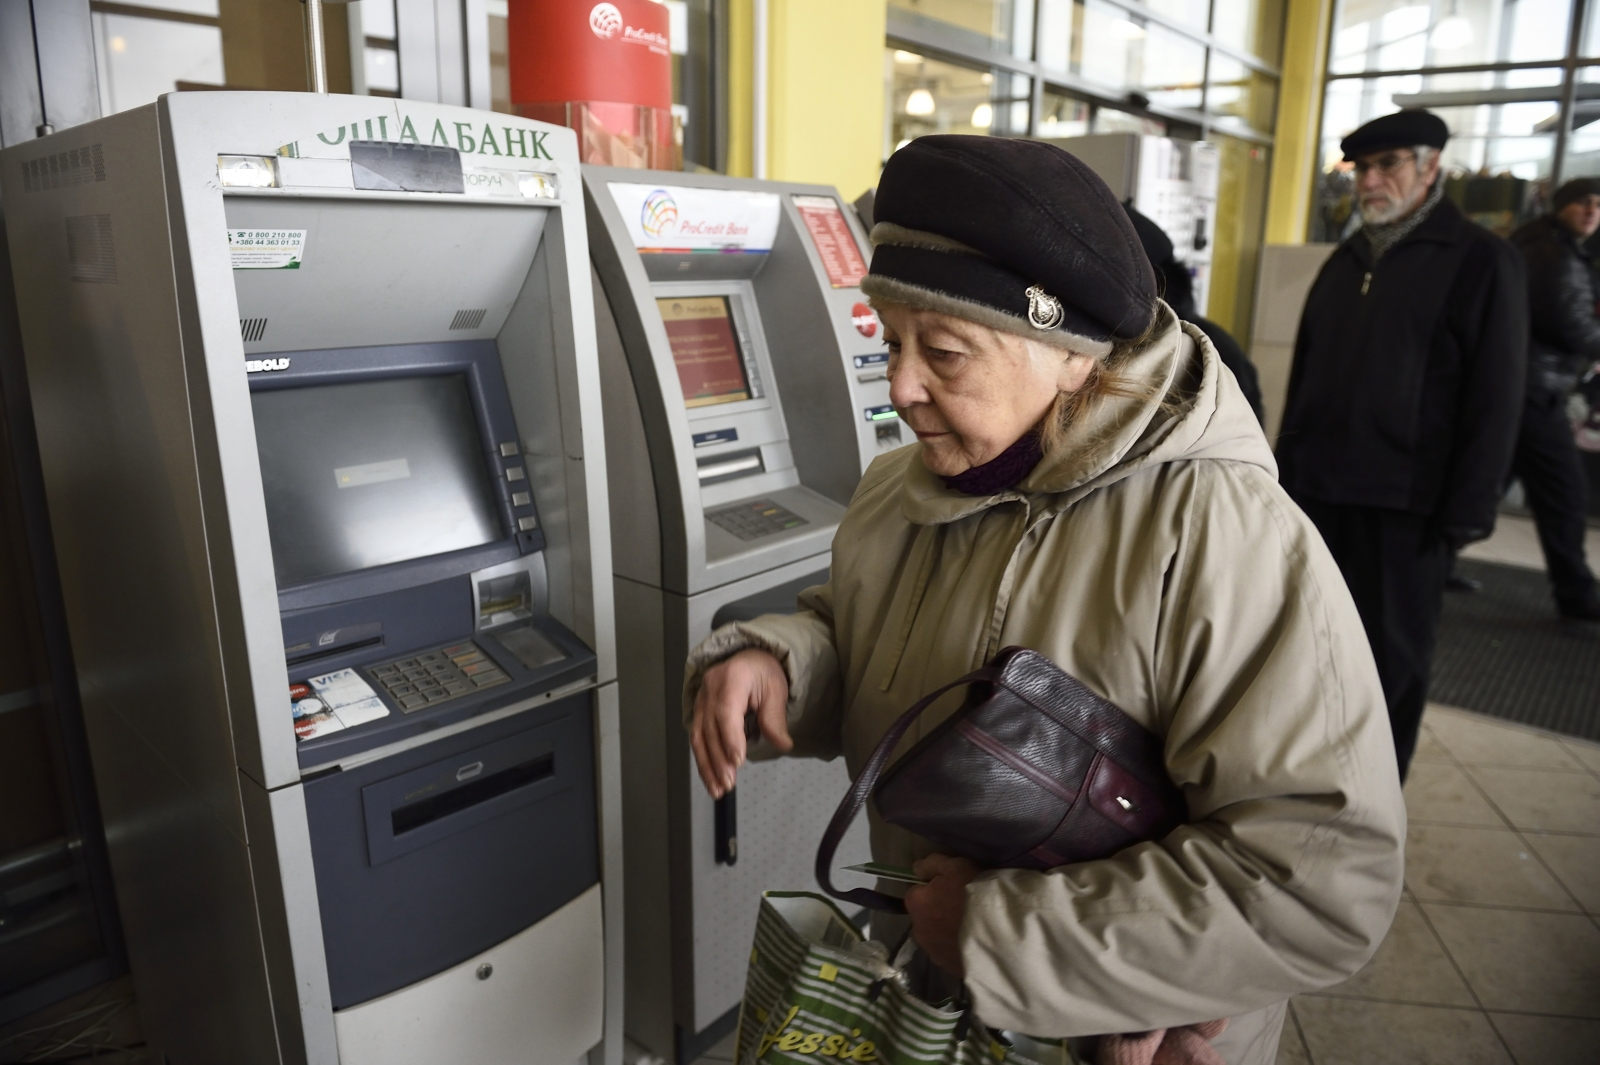 A woman walks in front of an ATM machine after she tried to get cash on November 26, 2014 in the eastern Ukrainian city of Donetsk.